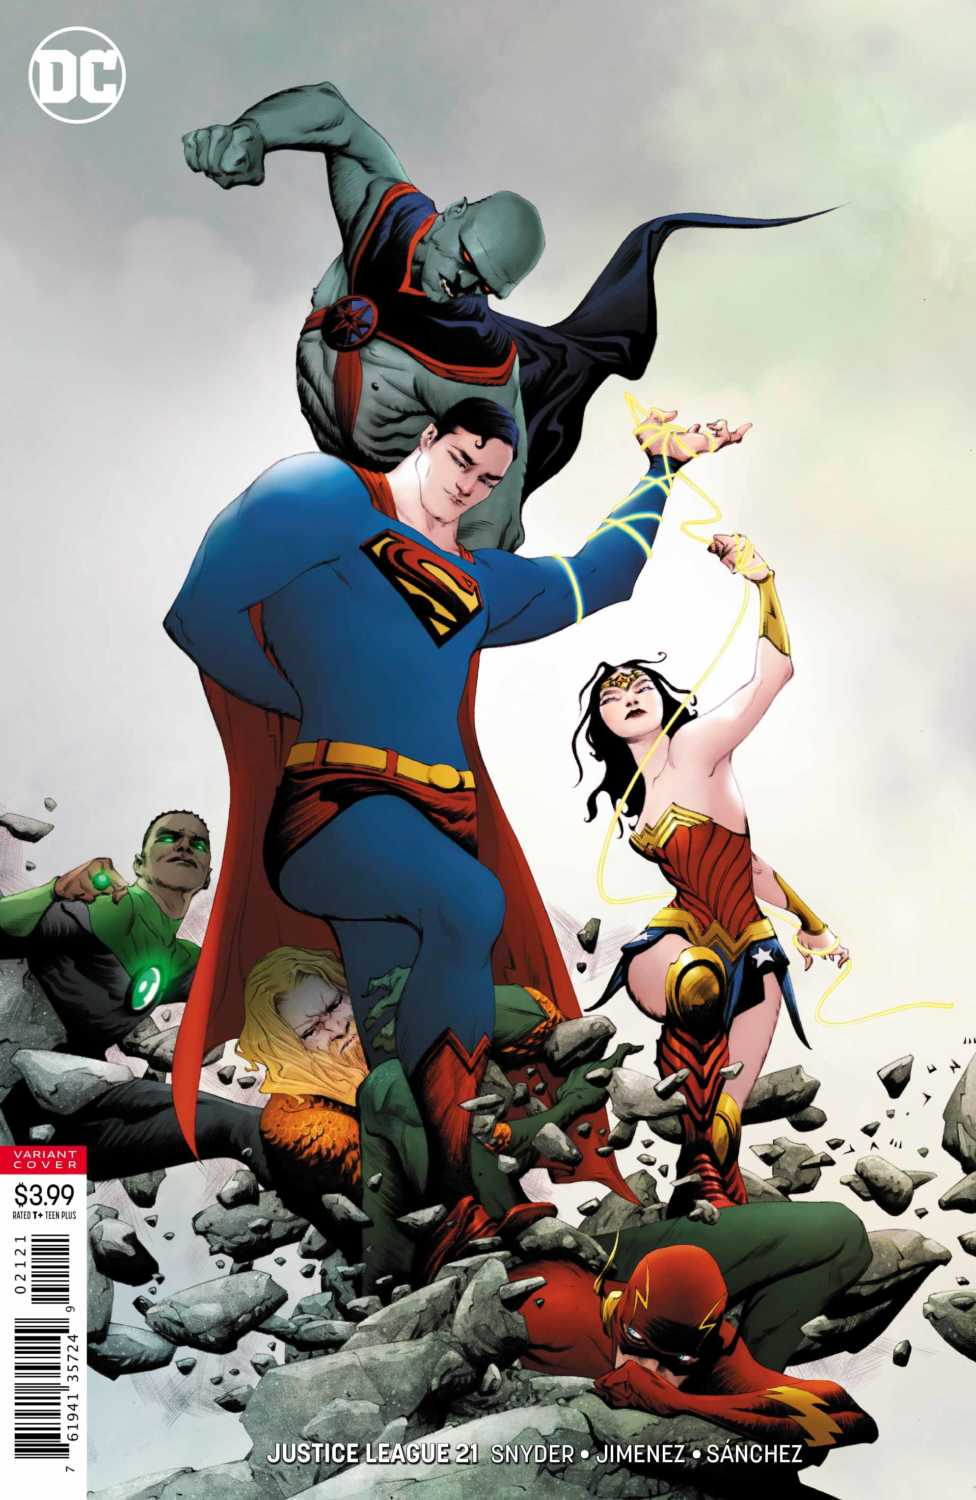 Justice League #21 Variant Cover